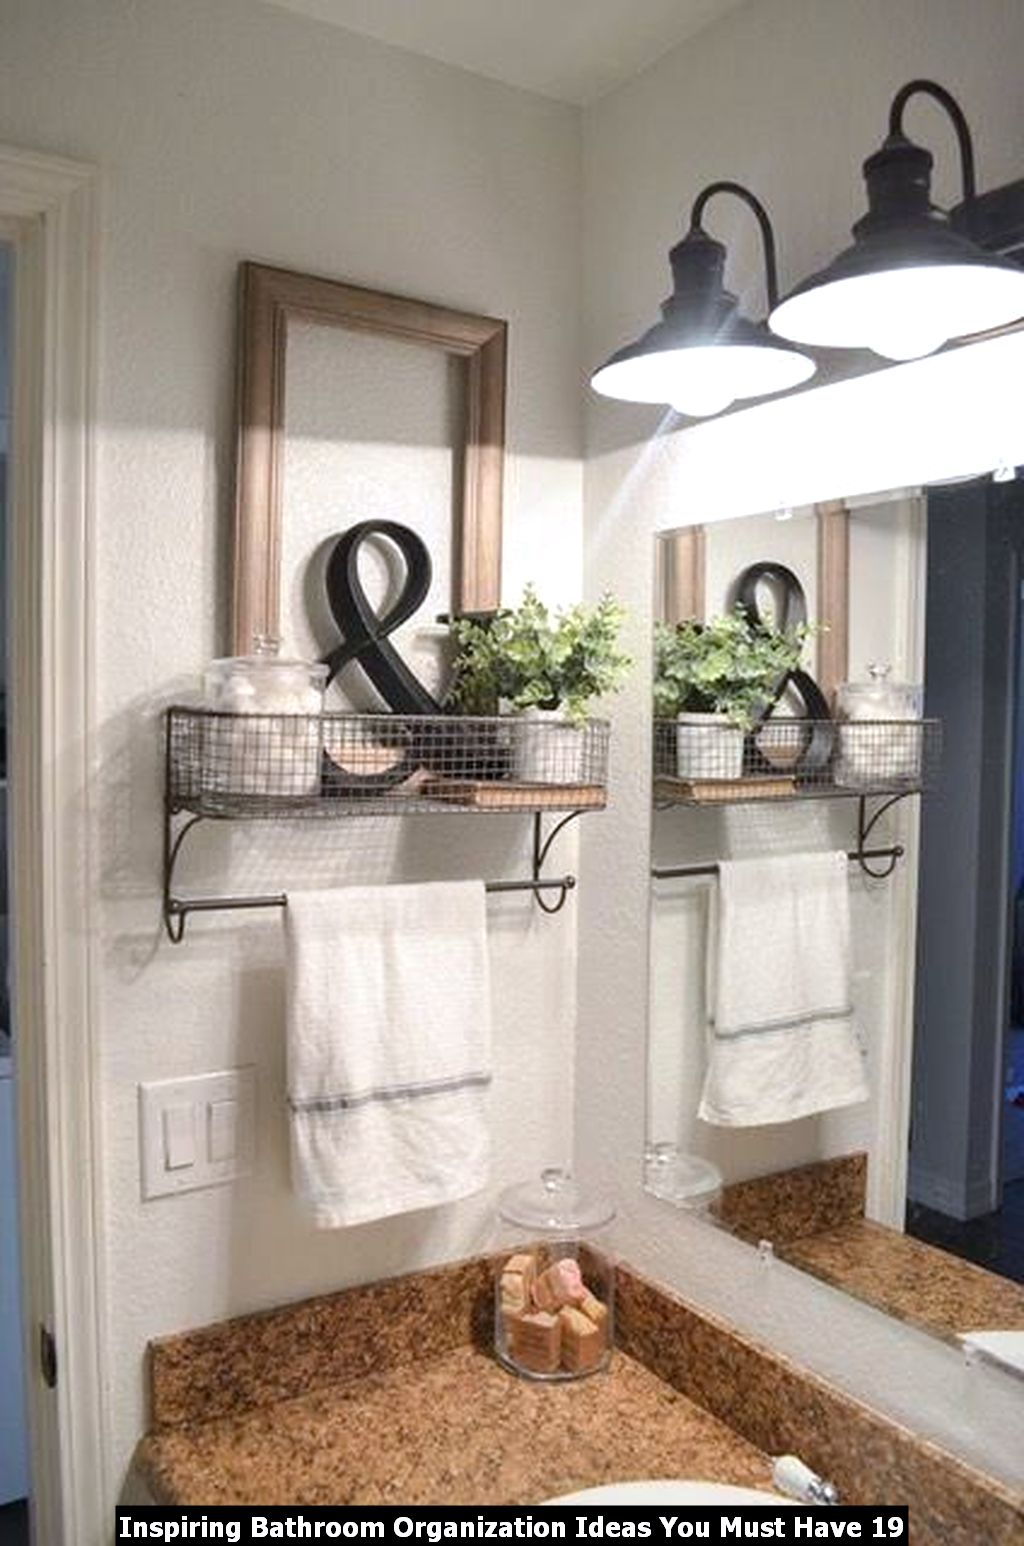 Inspiring Bathroom Organization Ideas You Must Have 19